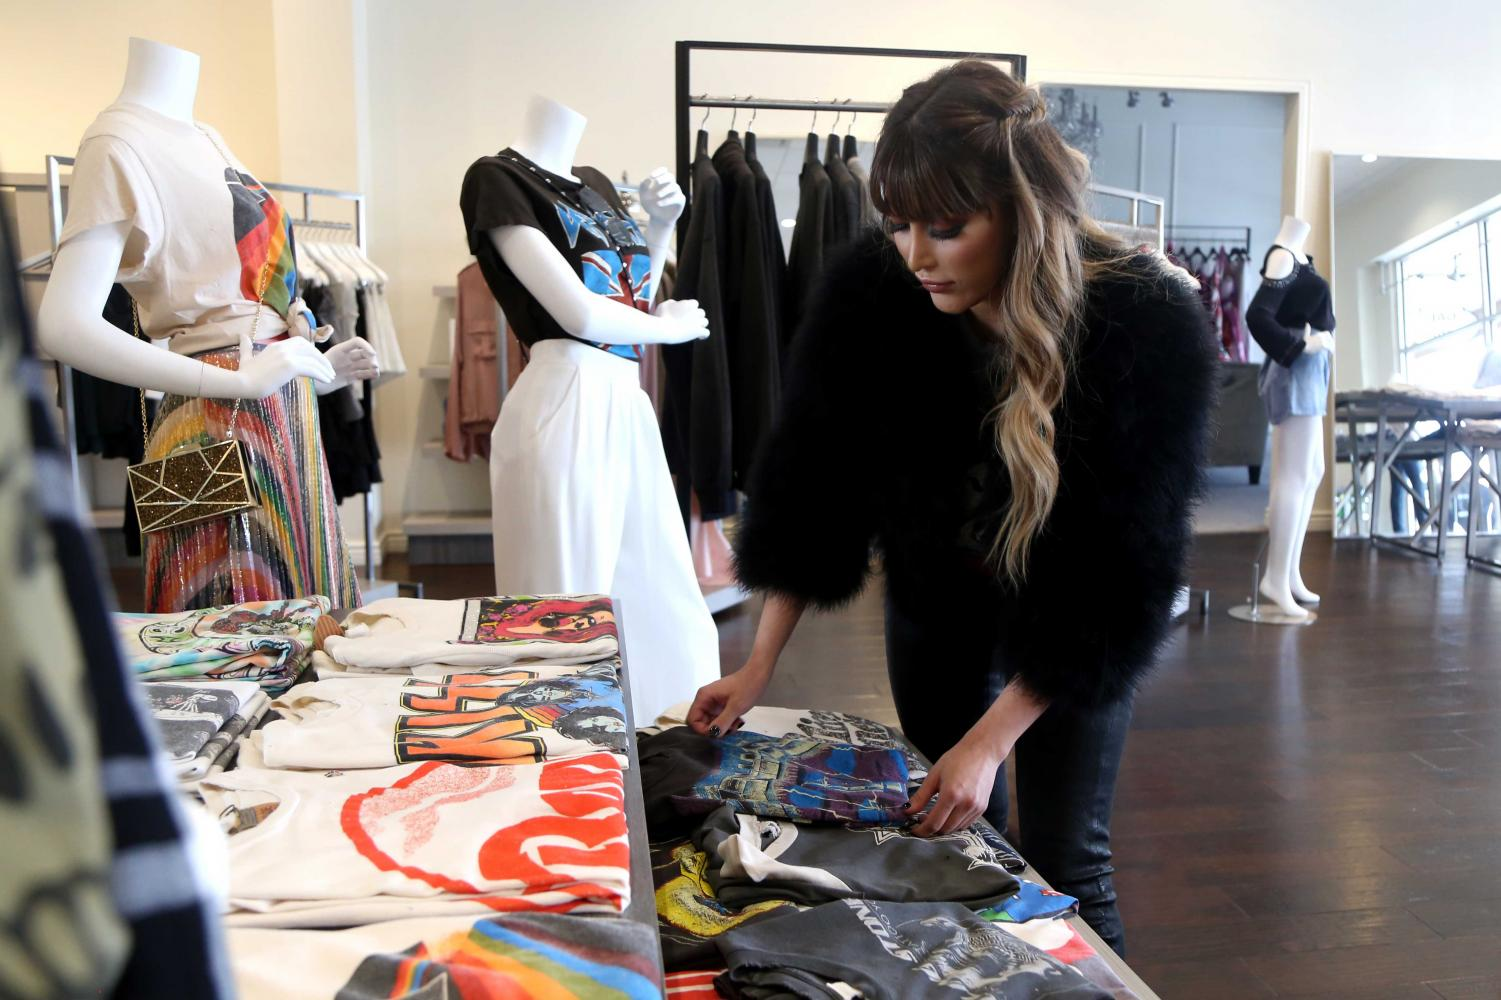 Gesuina Arianna Legaspy arranges clothes at her boutique GAL Fashion. The boutique is located at 5860 N Mesa St. and open Monday-Saturday from 10 a.m. - 7 p.m.